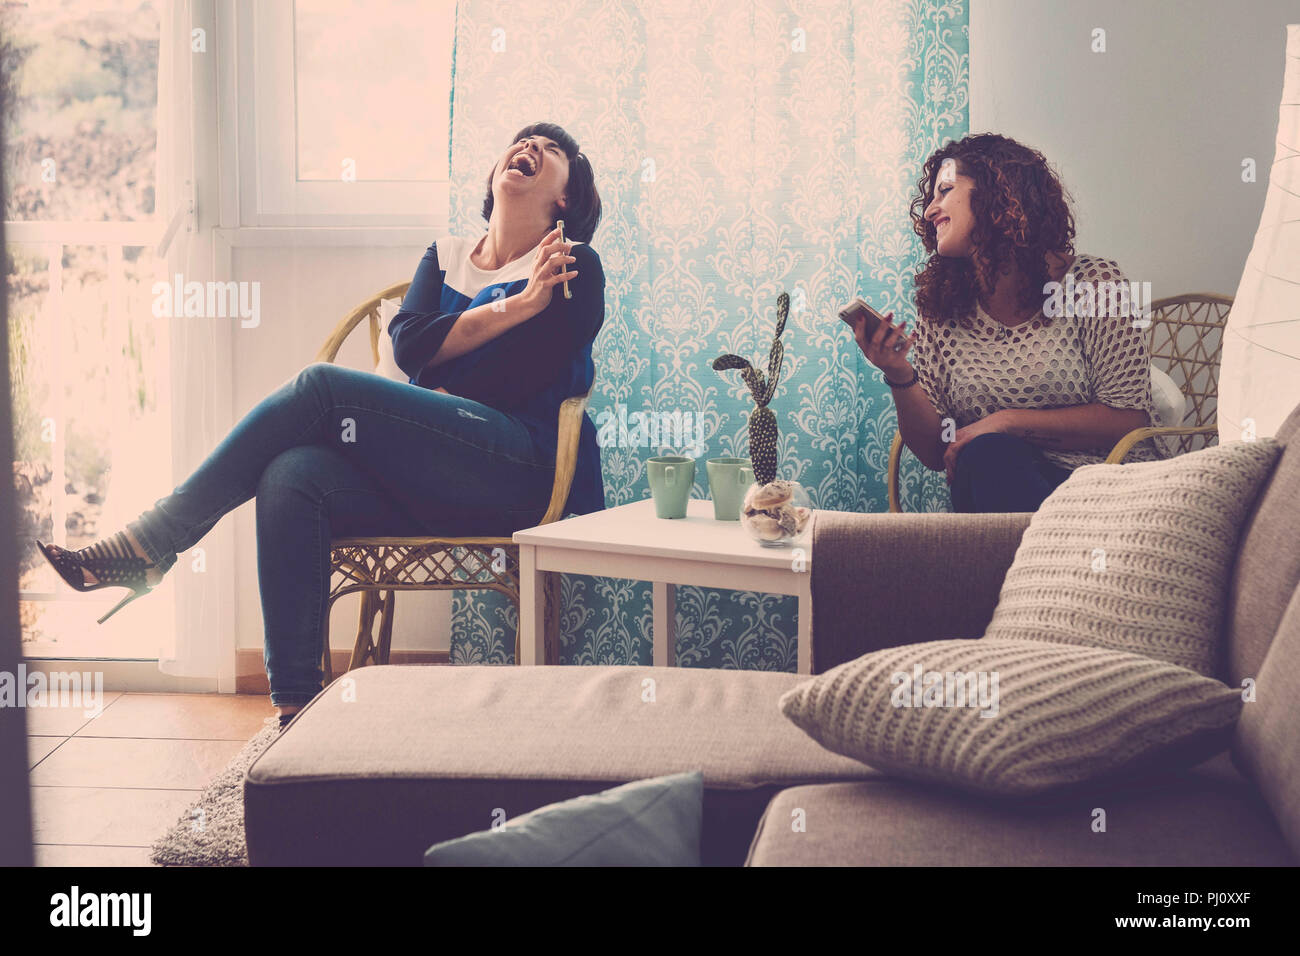 two young happy women friends sit down at home and laugh telling stories and facts about the day. indoor lifestyle concept in friendship with ladies u - Stock Image